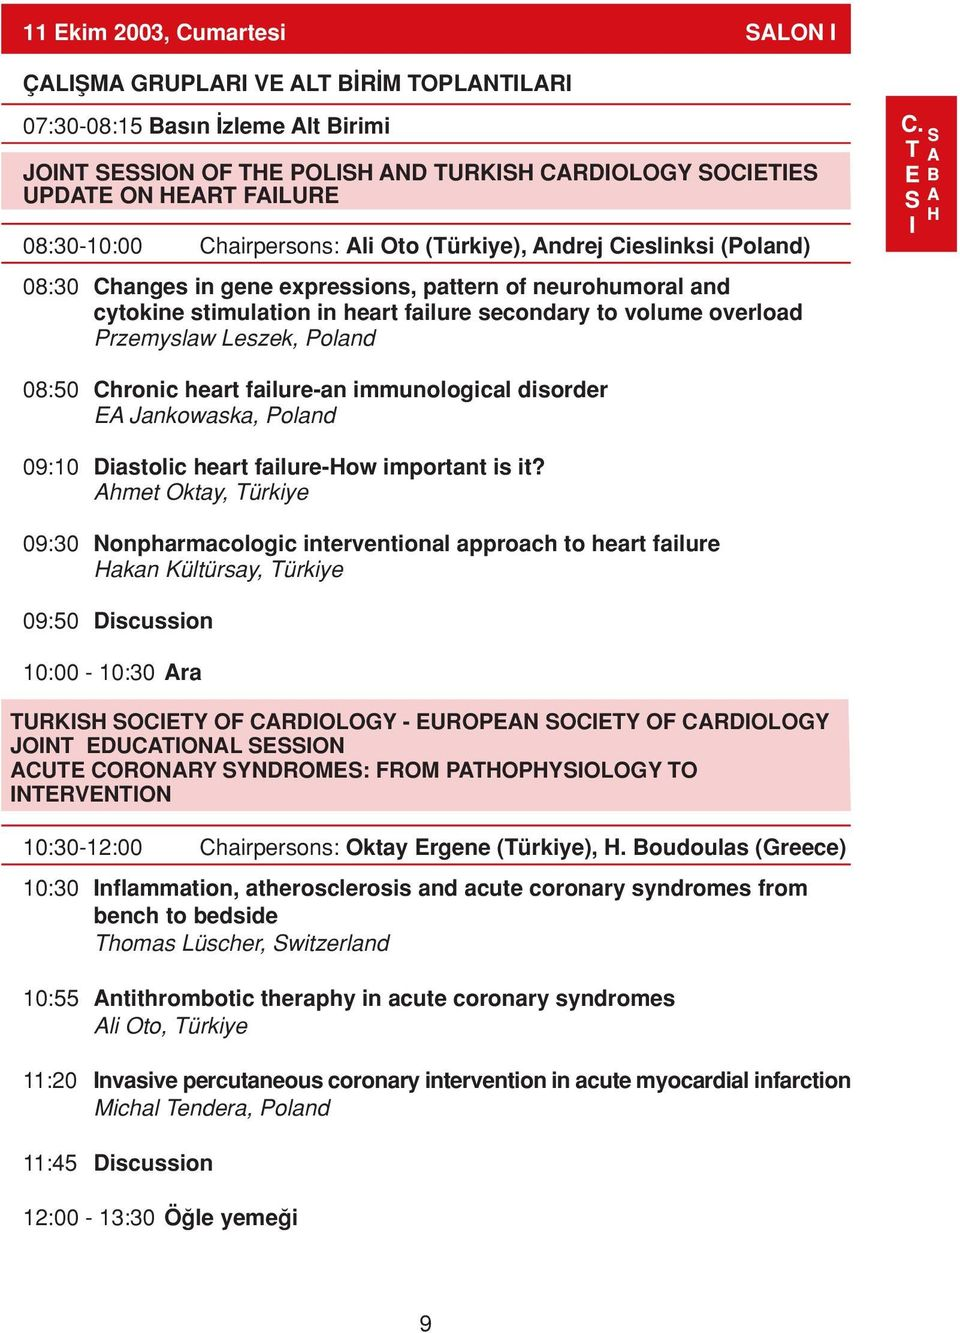 overload Przemyslaw Leszek, Poland 08:50 Chronic heart failure-an immunological disorder EA Jankowaska, Poland 09:10 Diastolic heart failure-how important is it?